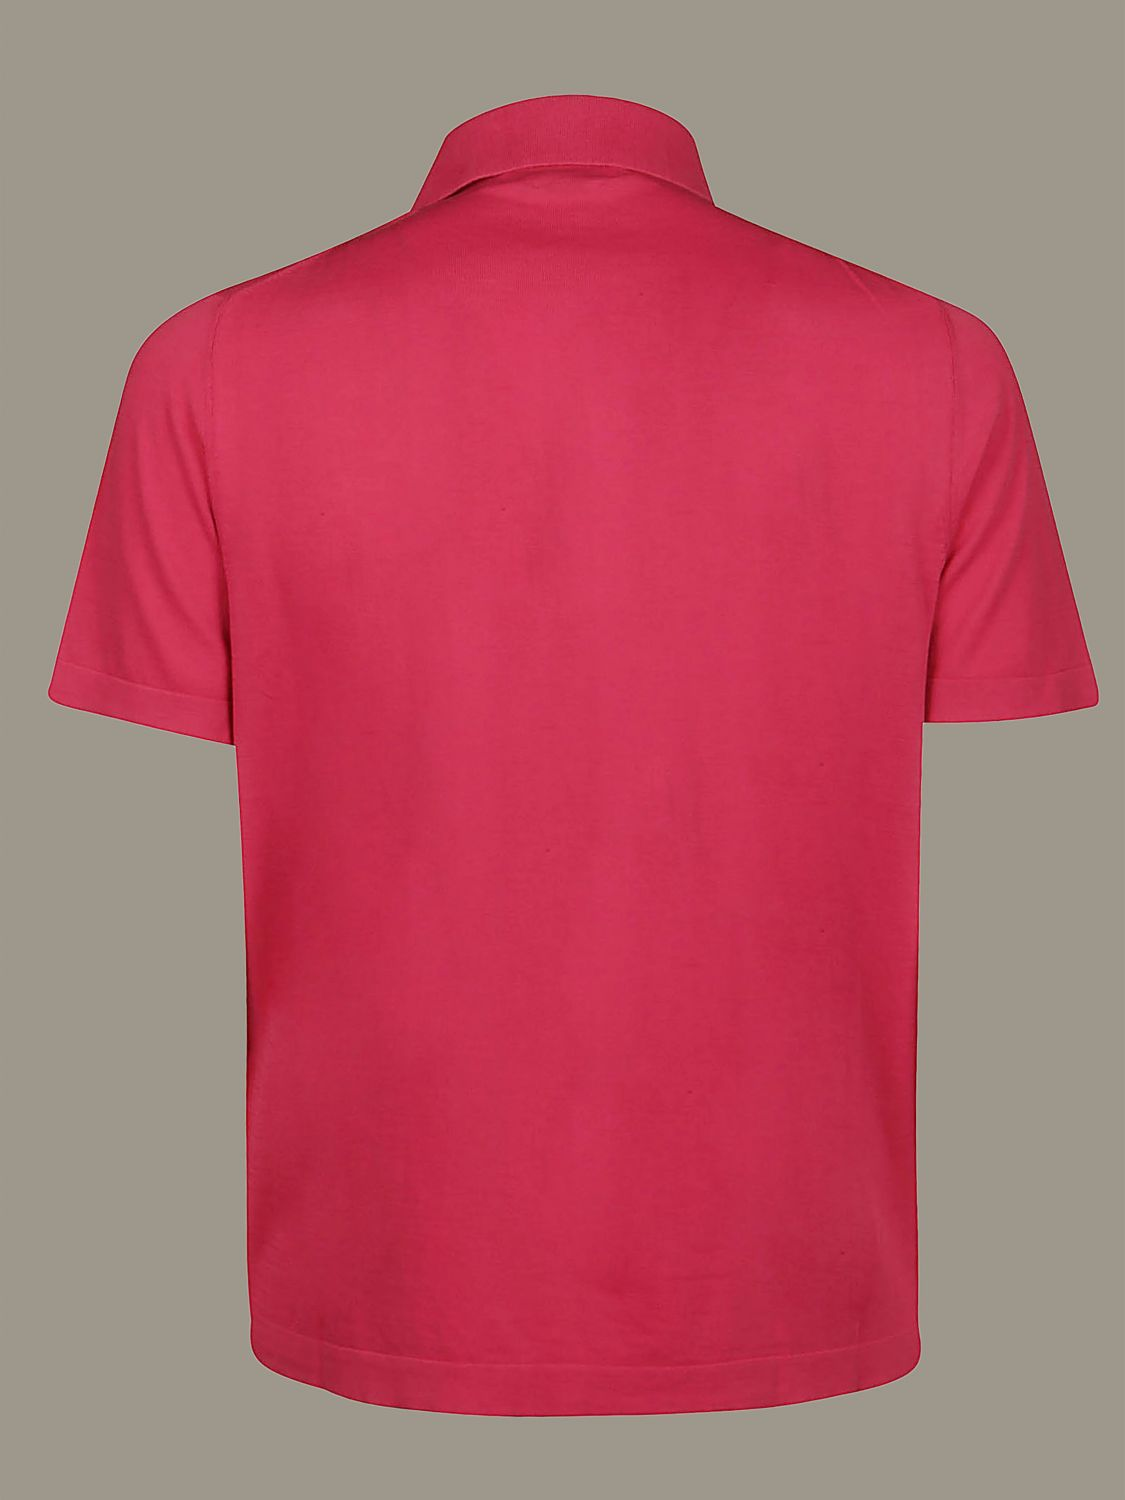 Polo shirt Ballantyne: Sweatshirt men Ballantyne red 2